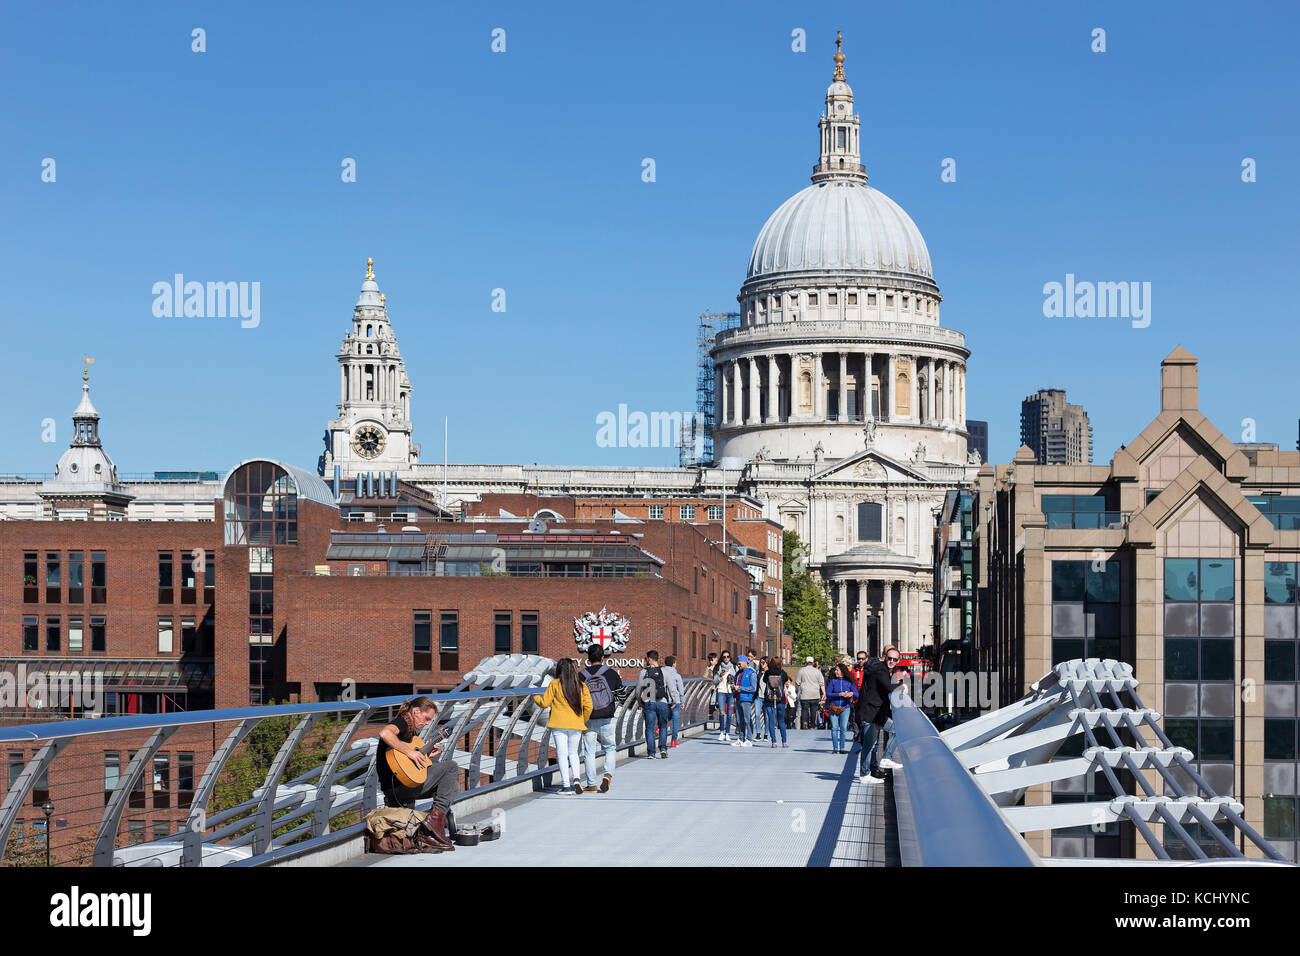 LONDON - SEPTEMBER 2017; People on the Millennium Bridge with St Paul's Cathedral on the background. - Stock Image